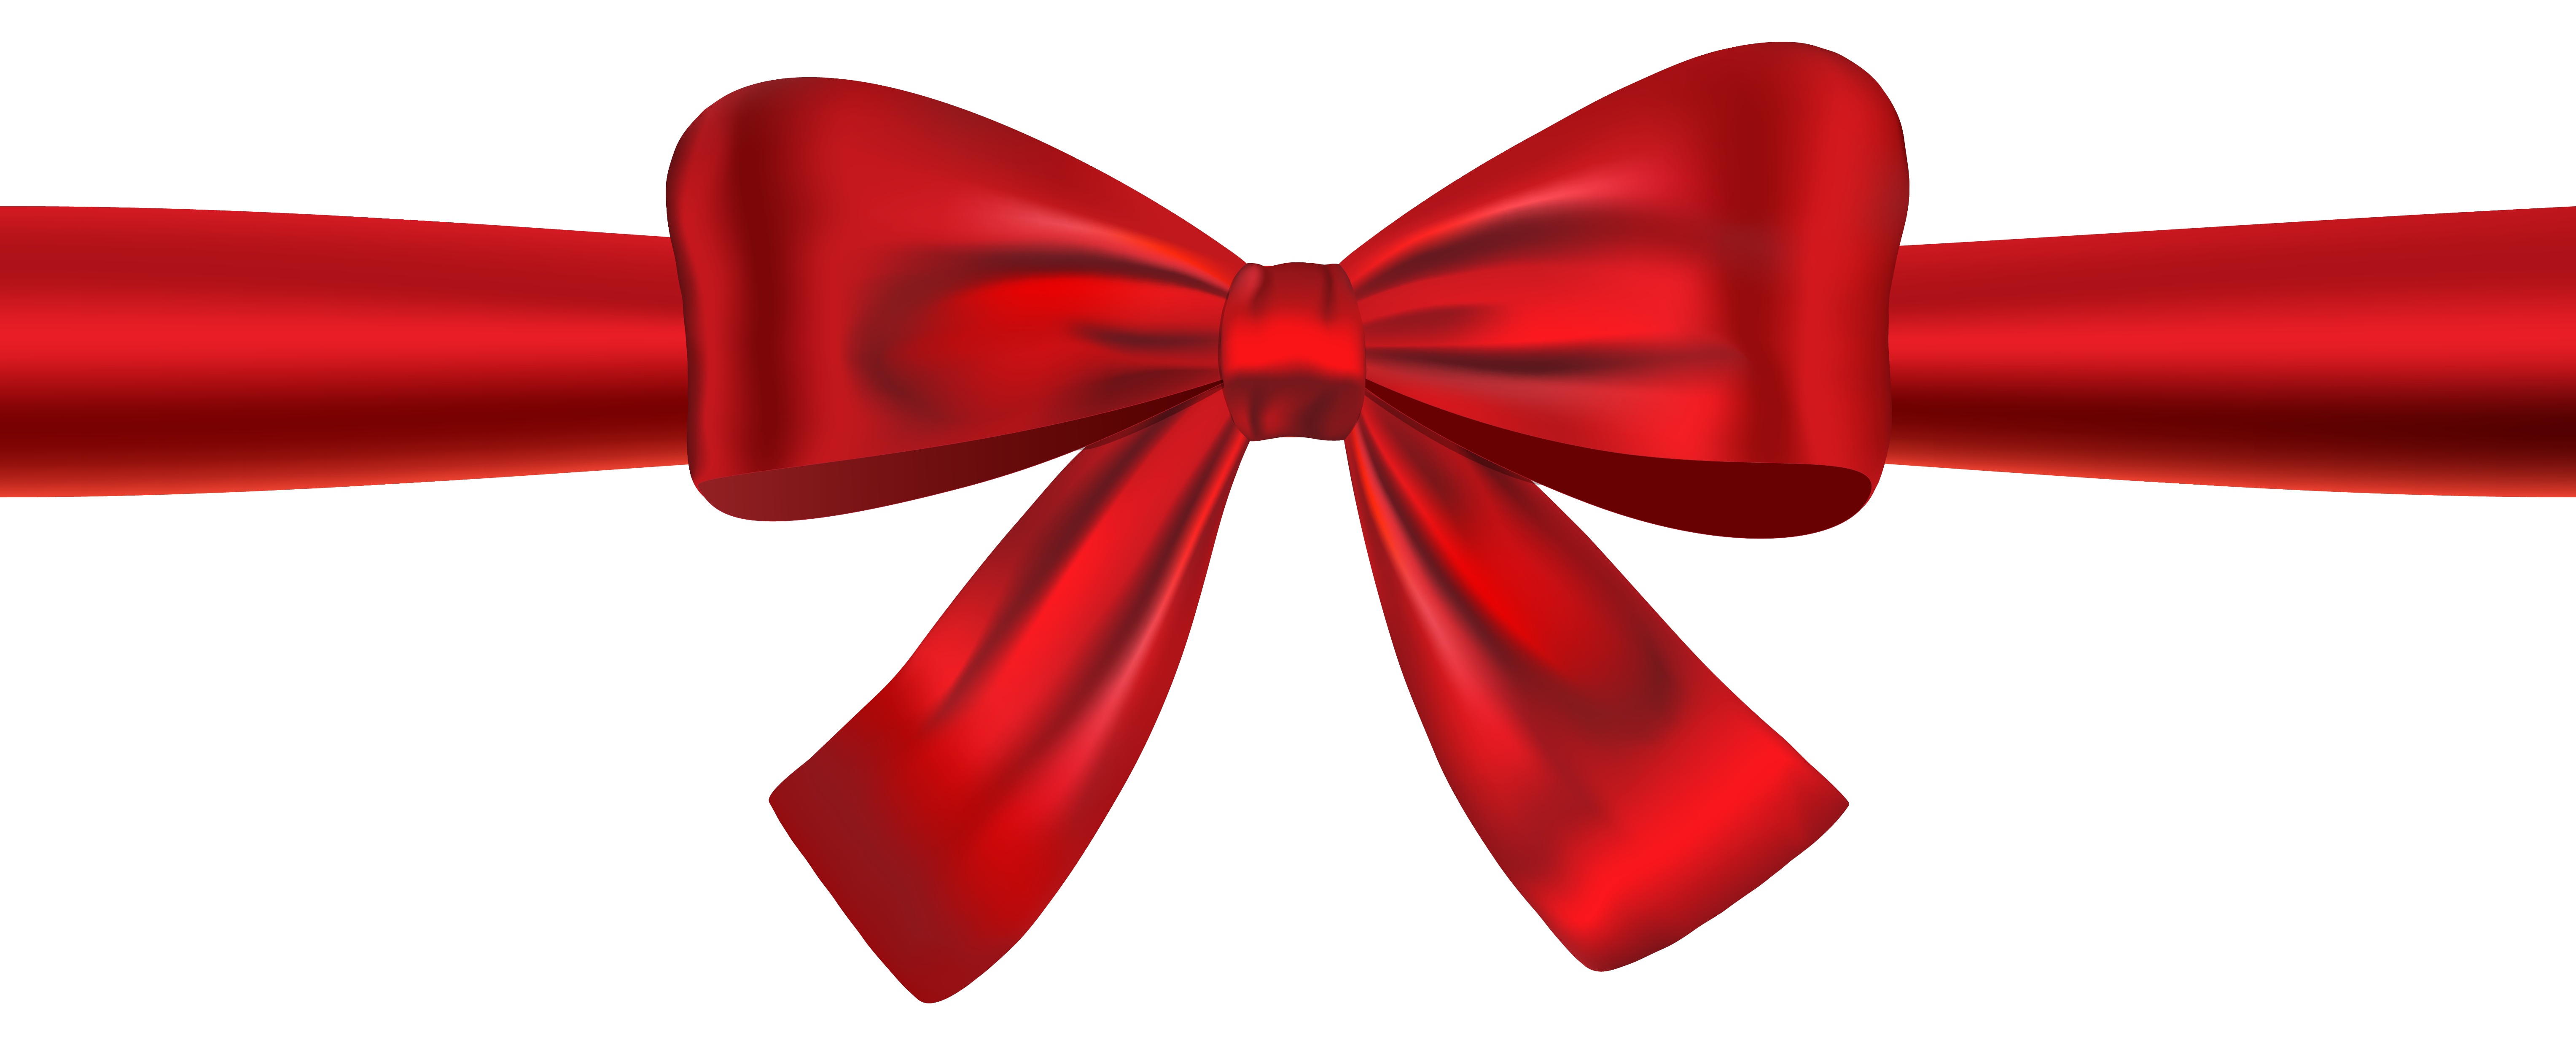 Red Ribbon and Bow PNG Clipart Image.